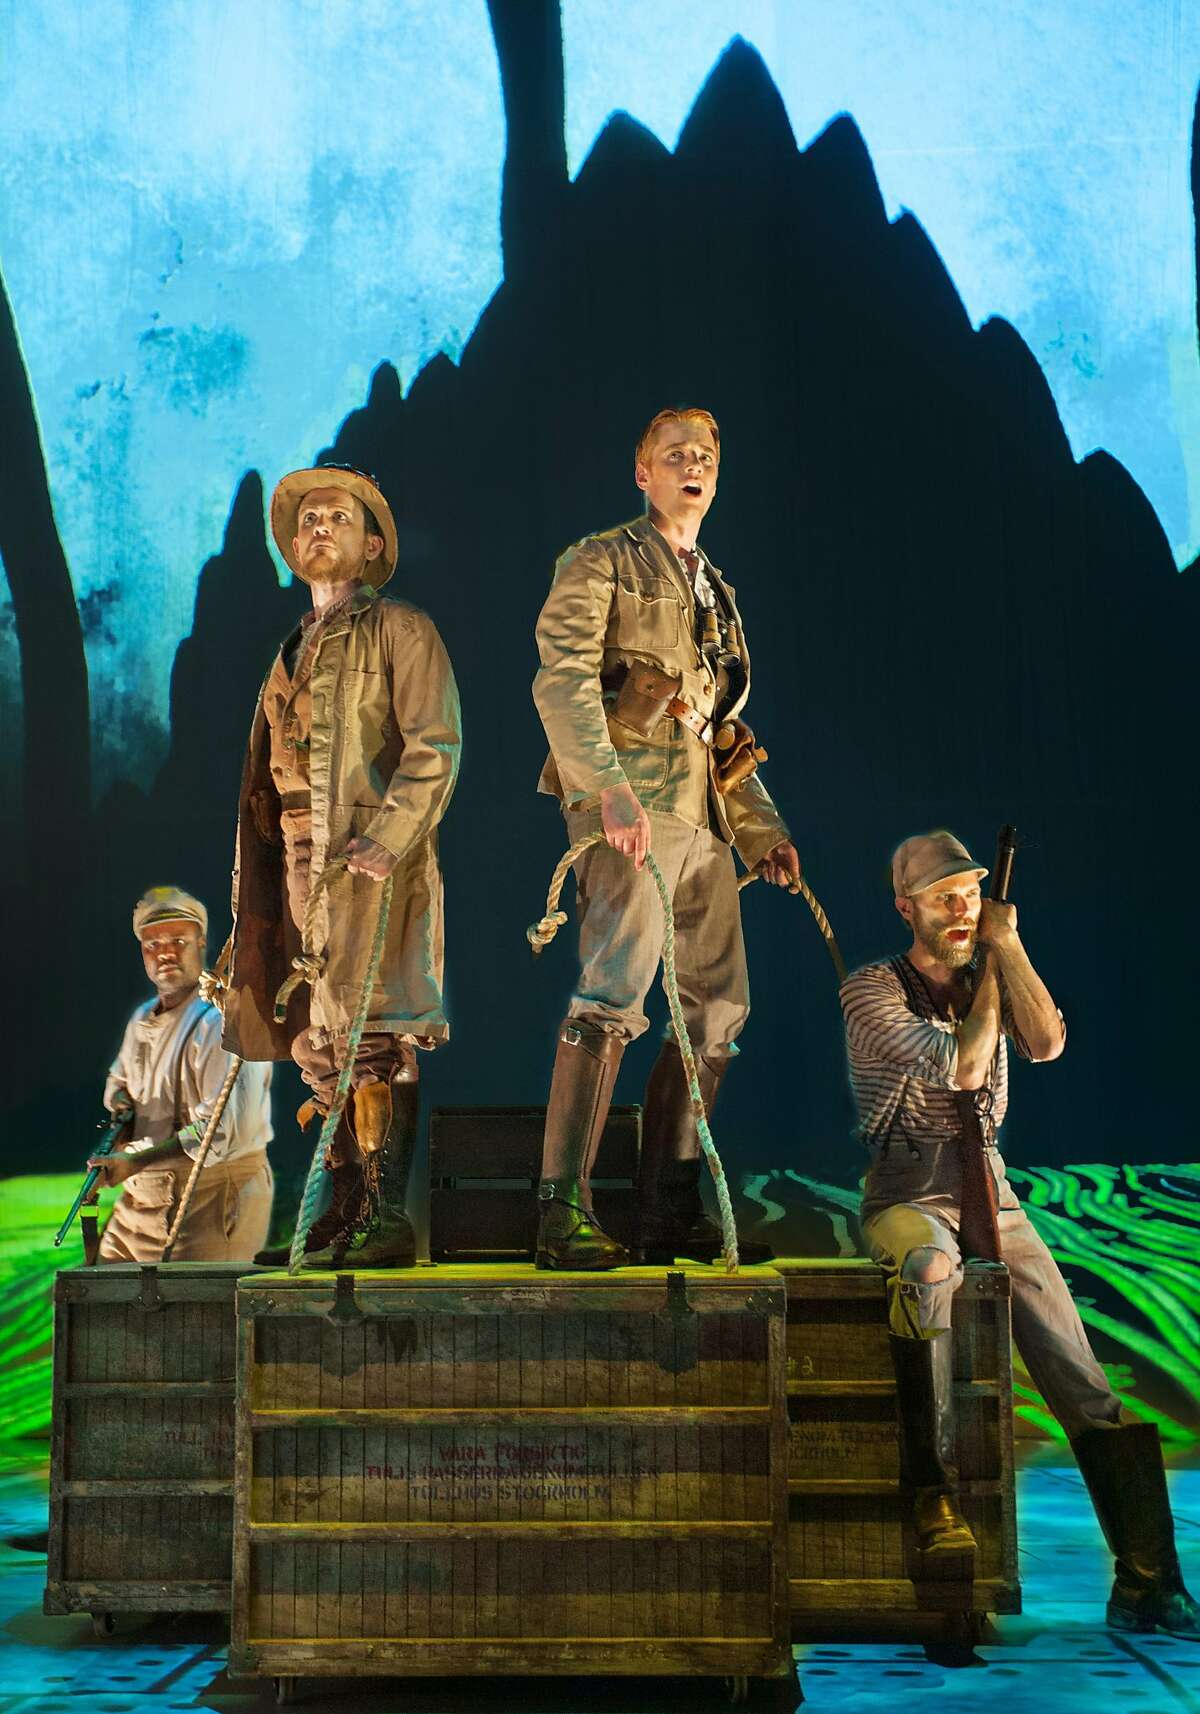 (L to R) Michael Belle, Jonathan Smucker, Isaiah Bell and Daniel Cilli in Opera Parallèle's US premiere production of Tarik O'Regan's Heart of Darkness, May 1-3 at Z Space in San Francisco. Opera Parallele's 2015 production of Heart of Darkness. Photo: Steve DiBartolomeo